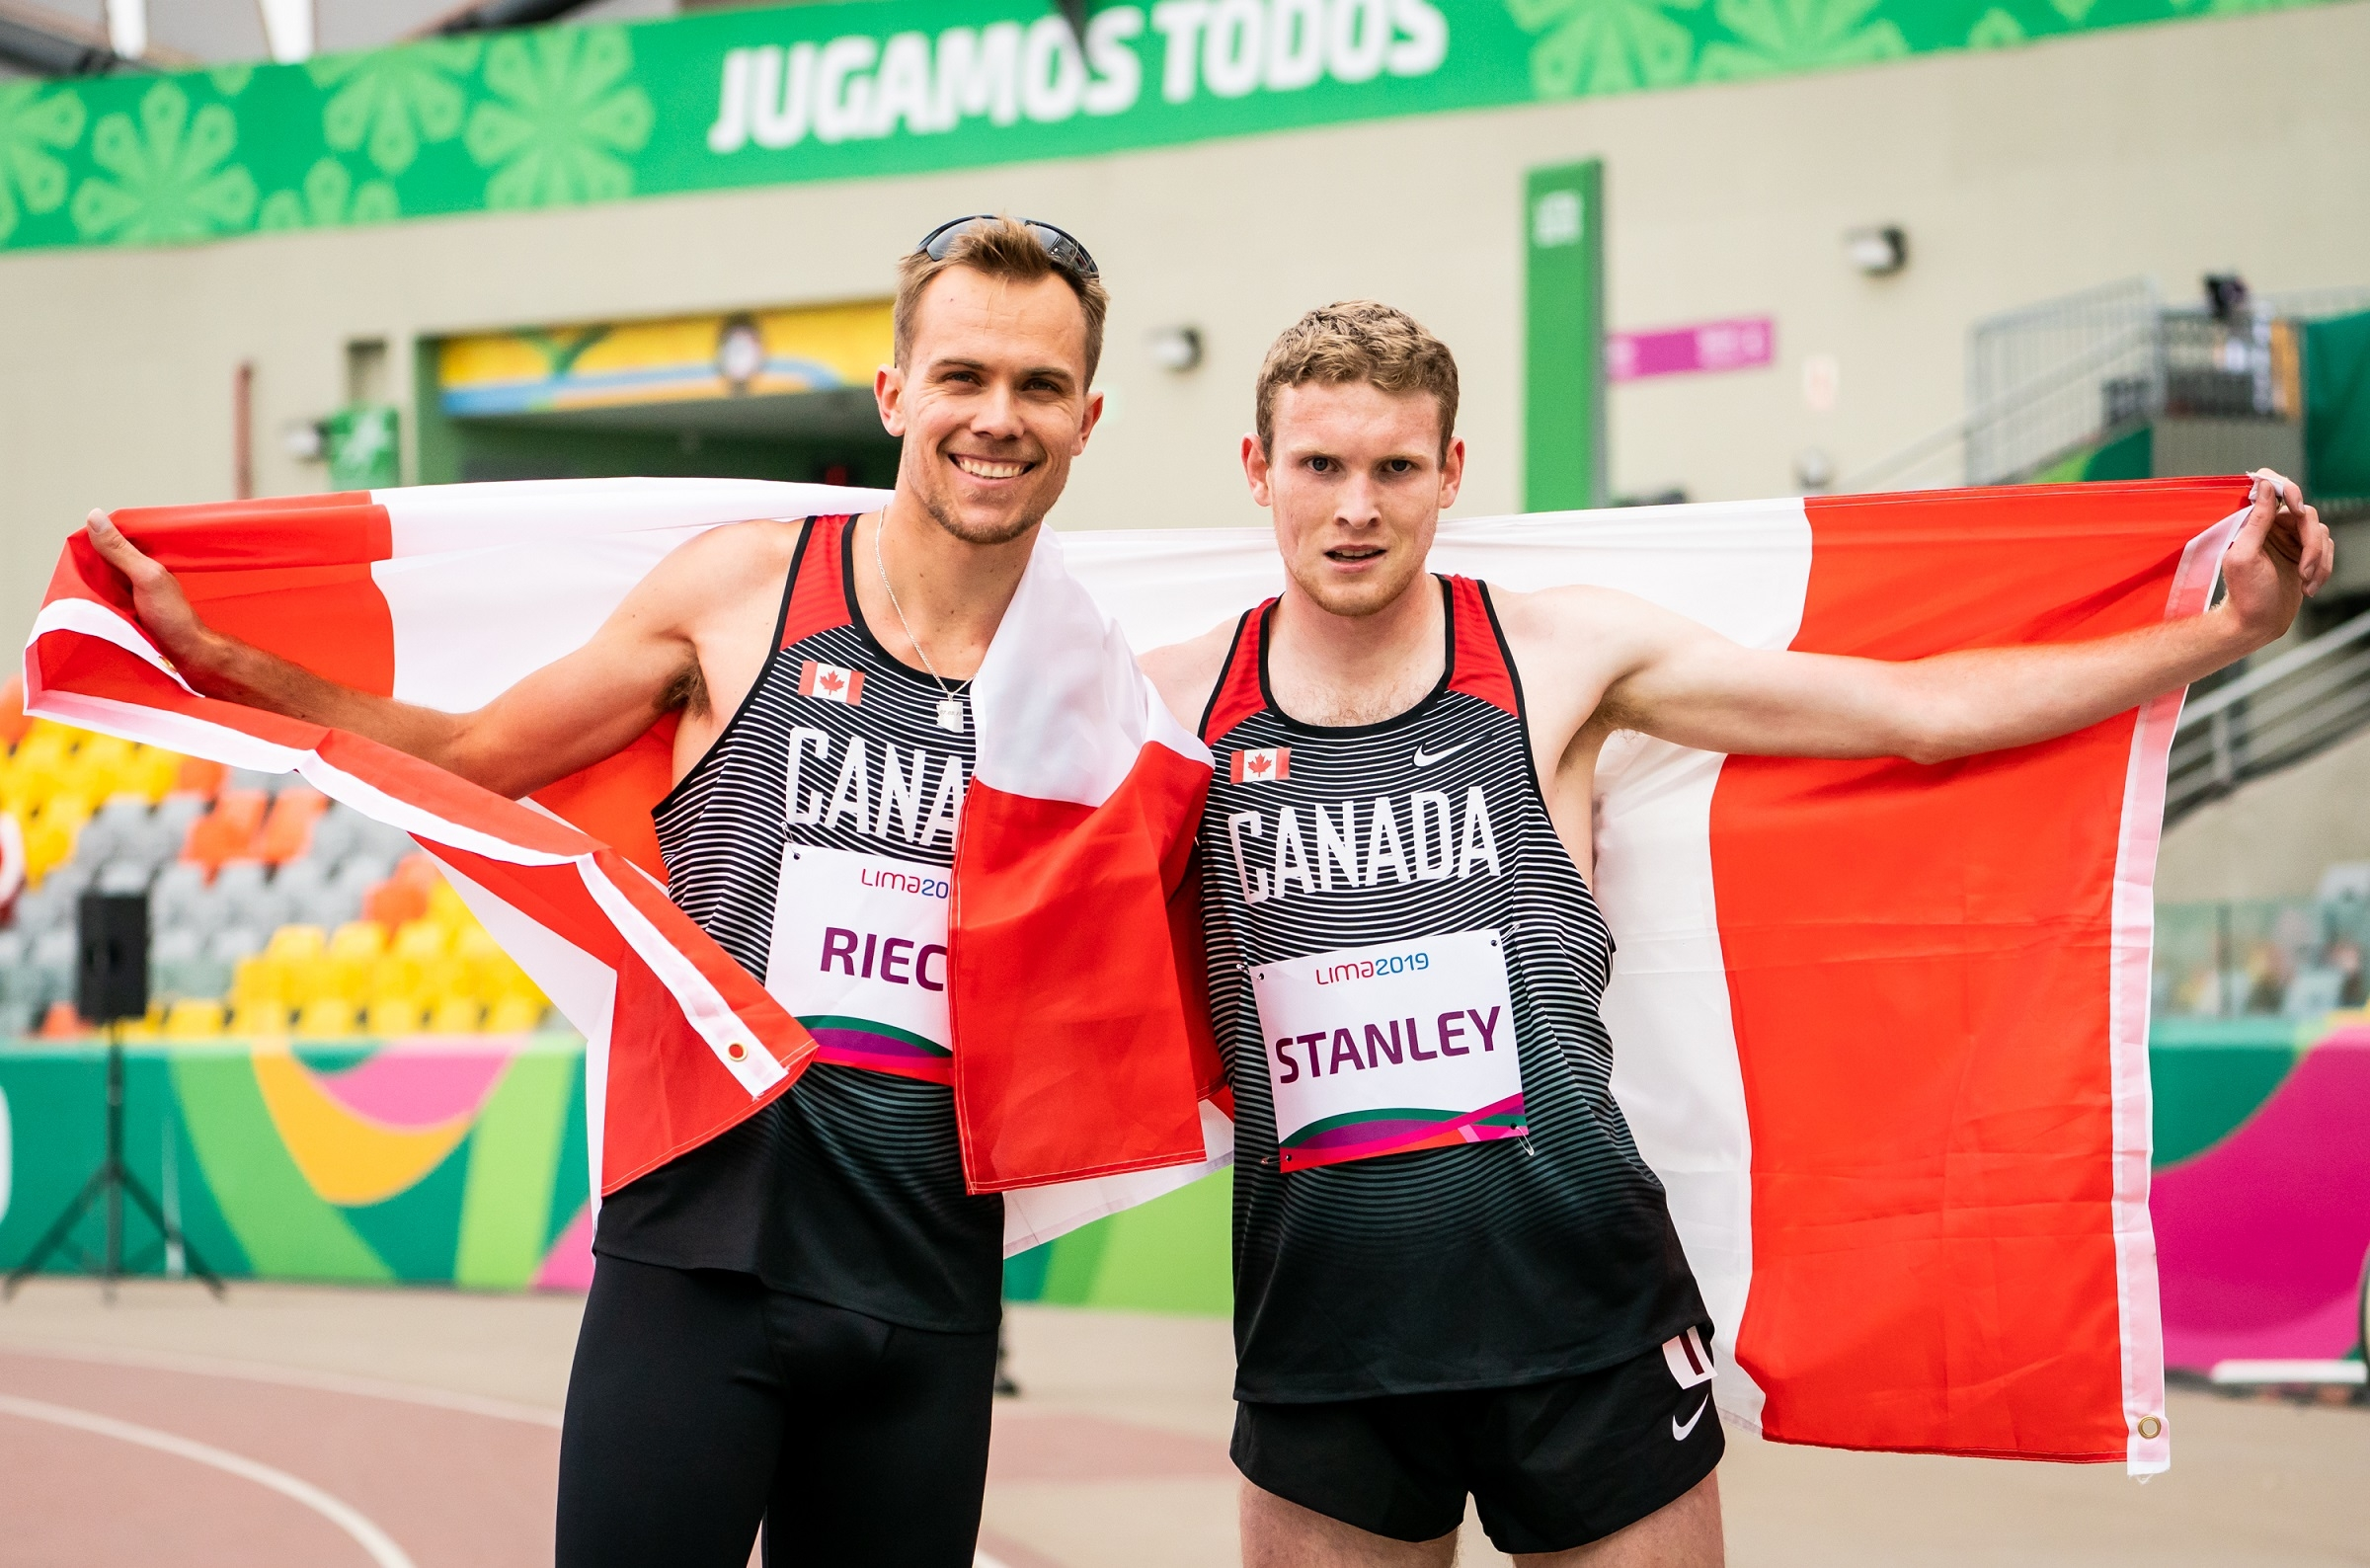 Nate Riech and Liam Stanley with the Canadian flag.